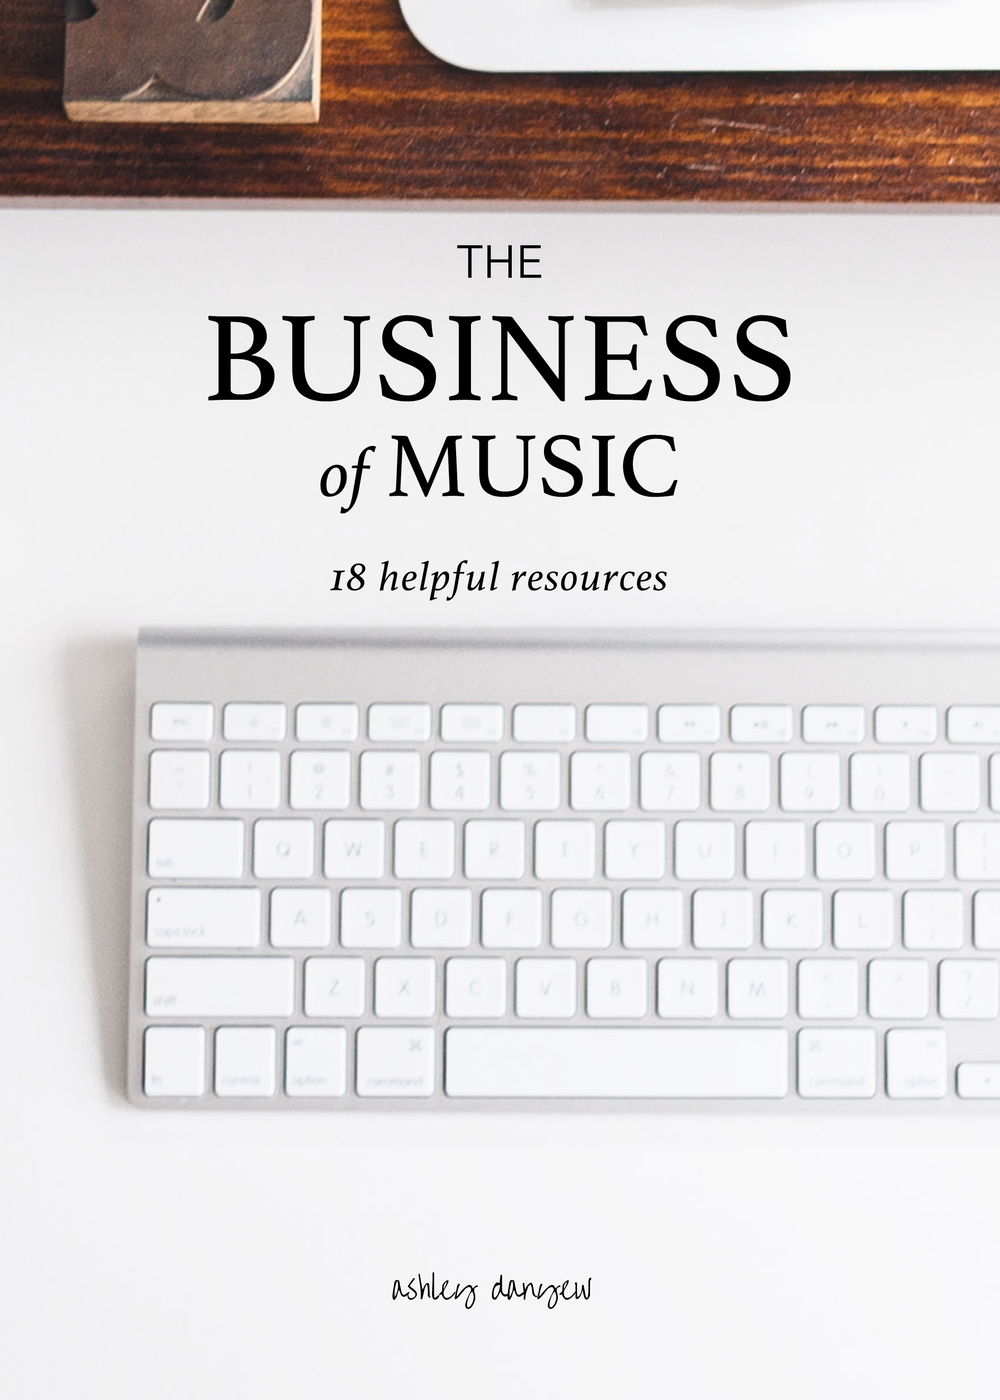 Copy of The Business of Music: 18 Helpful Resources